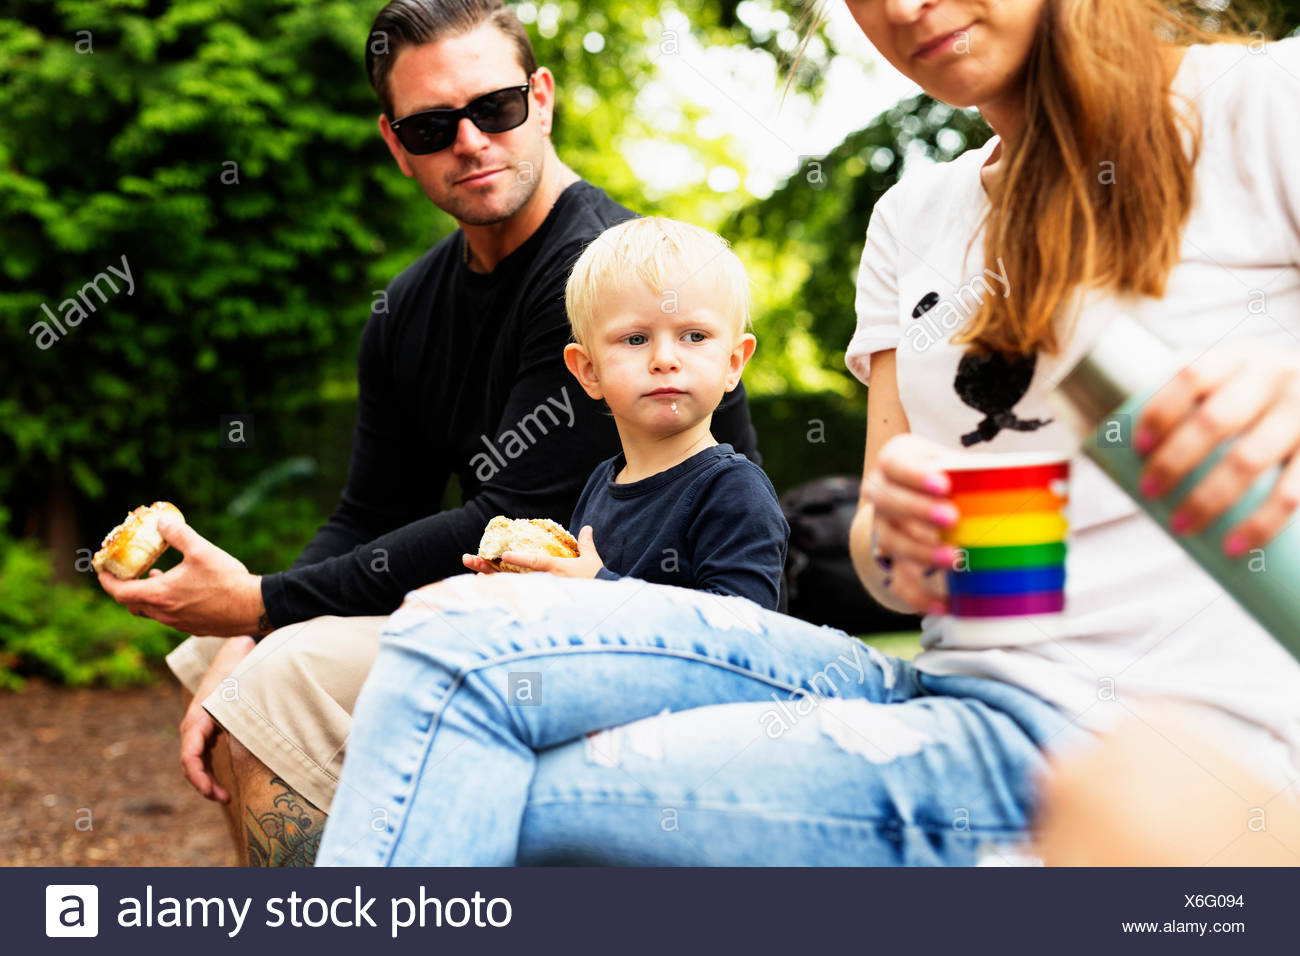 Parents and son having meal in park - Stock Image